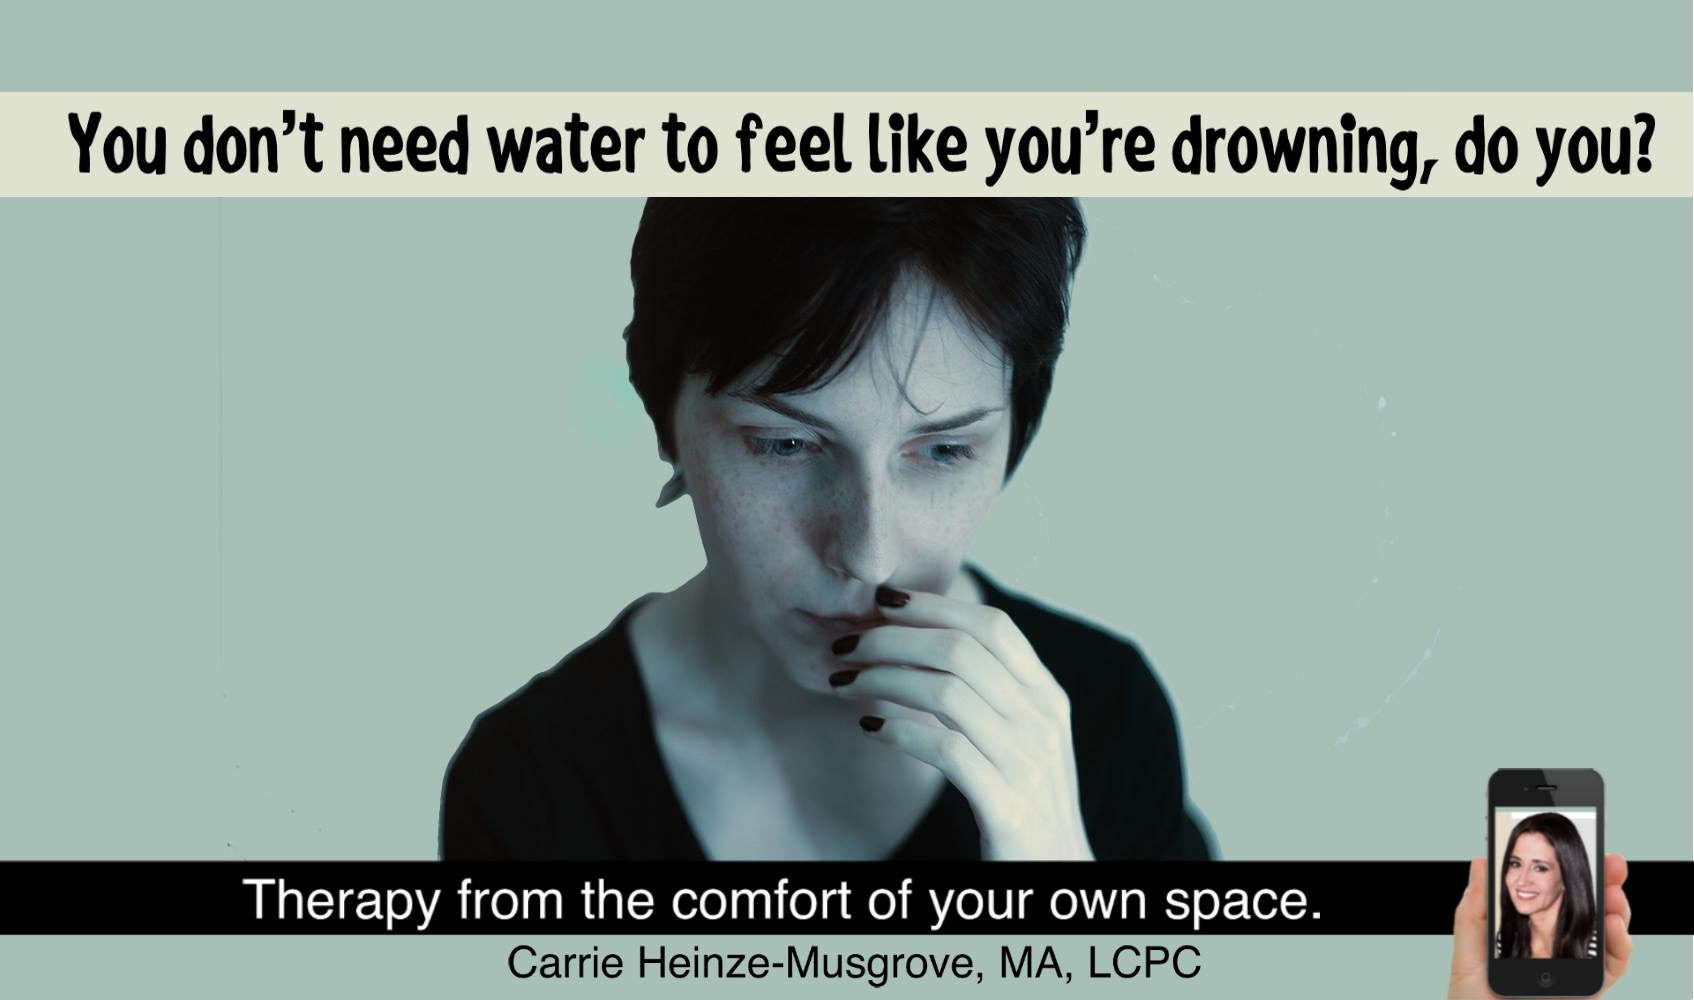 You don't need water to drown.